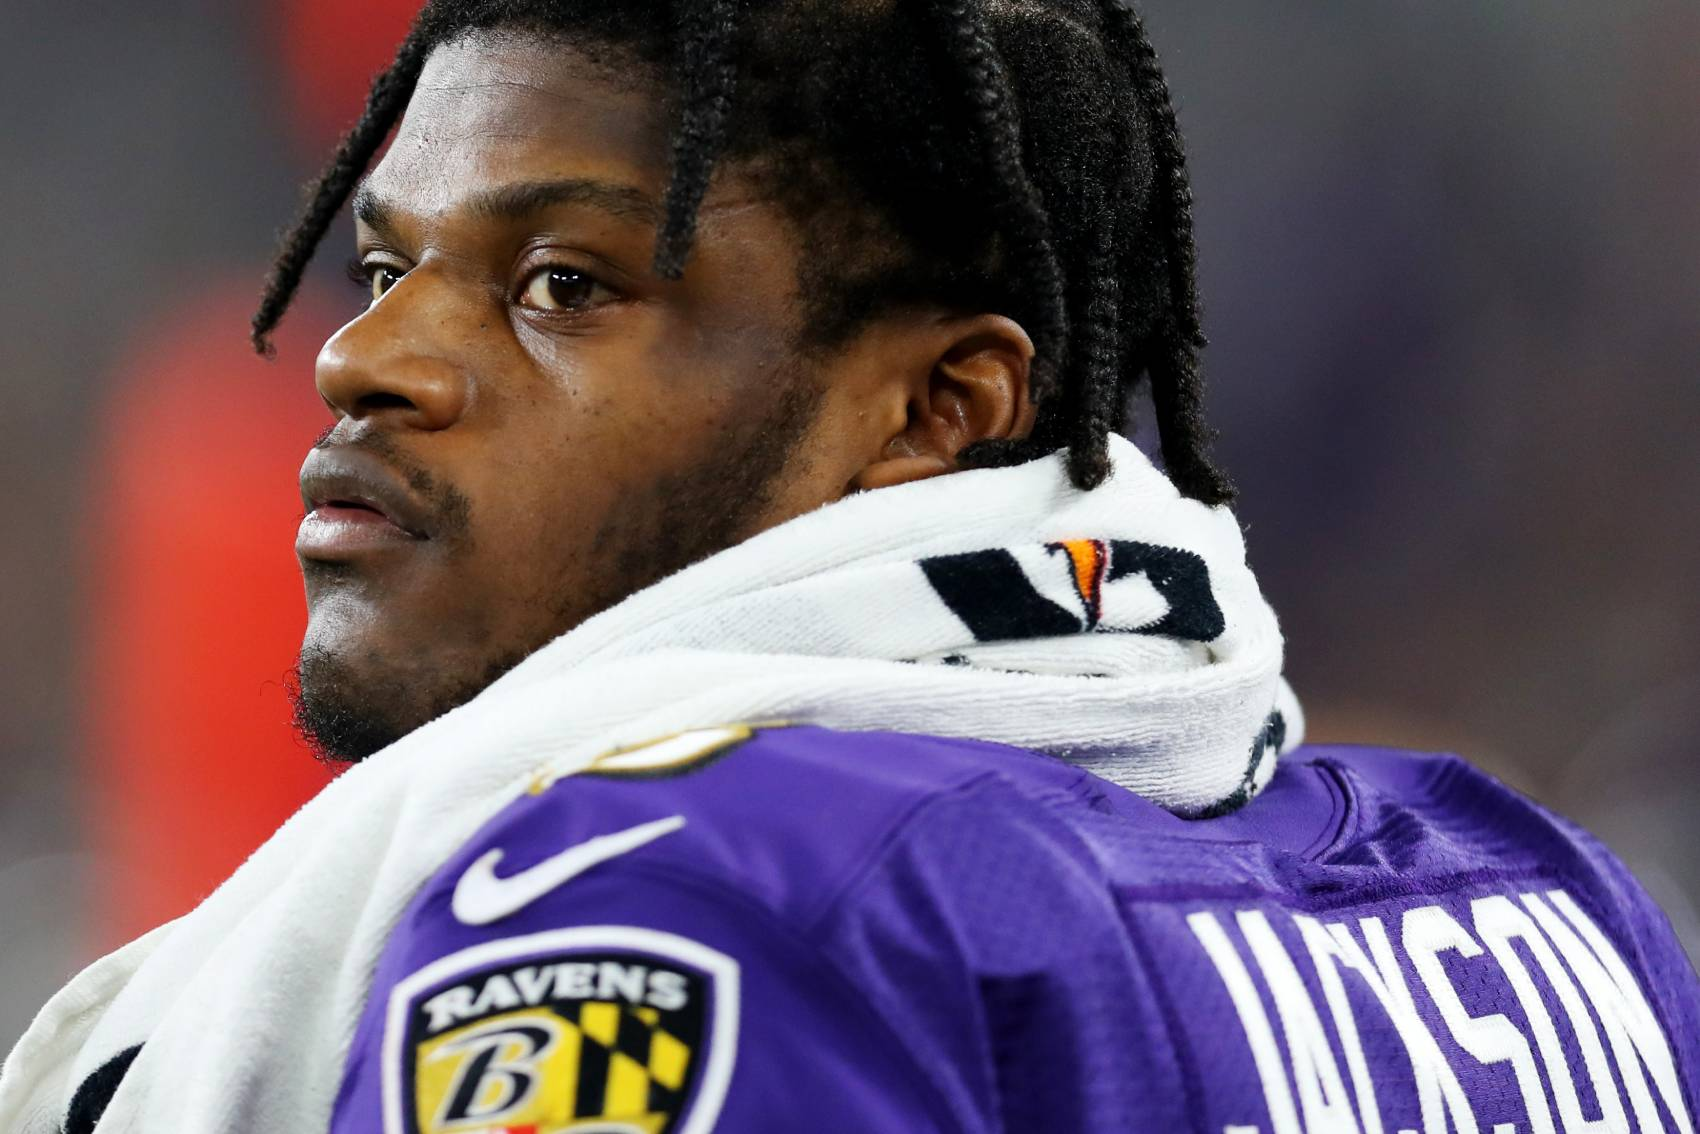 Baltimore Ravens quarterback Lamar Jackson doesn't look like himself in 'Madden NFL 21', even though he's the game's cover athlete.